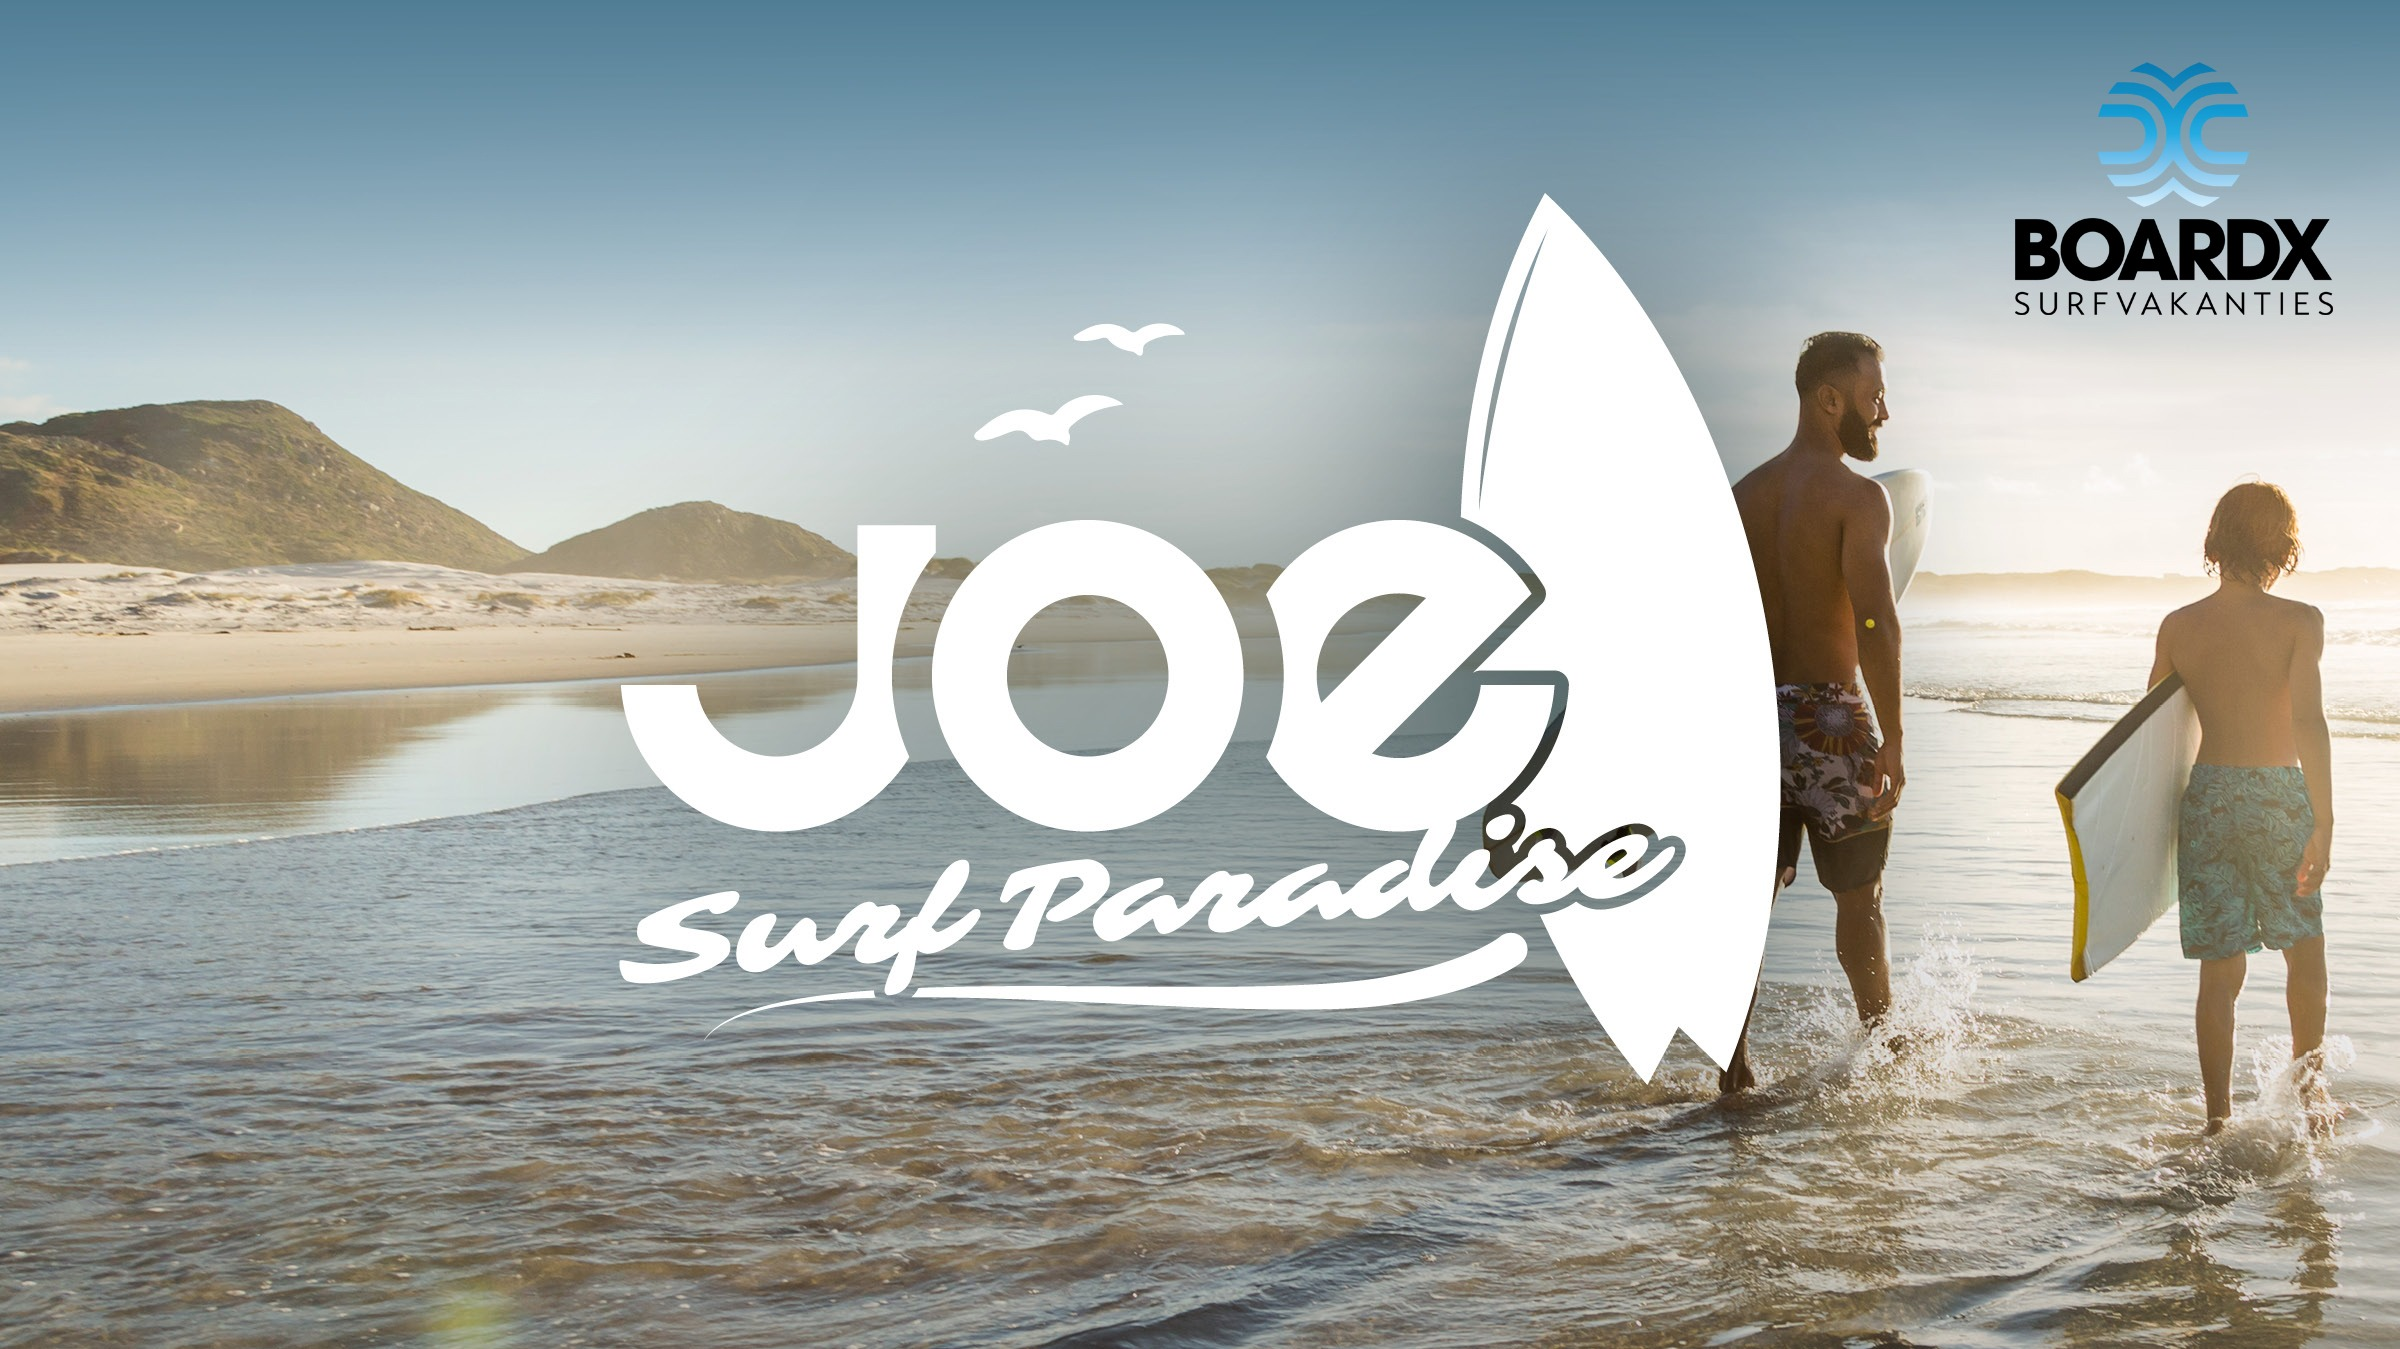 Joe surfparadise site